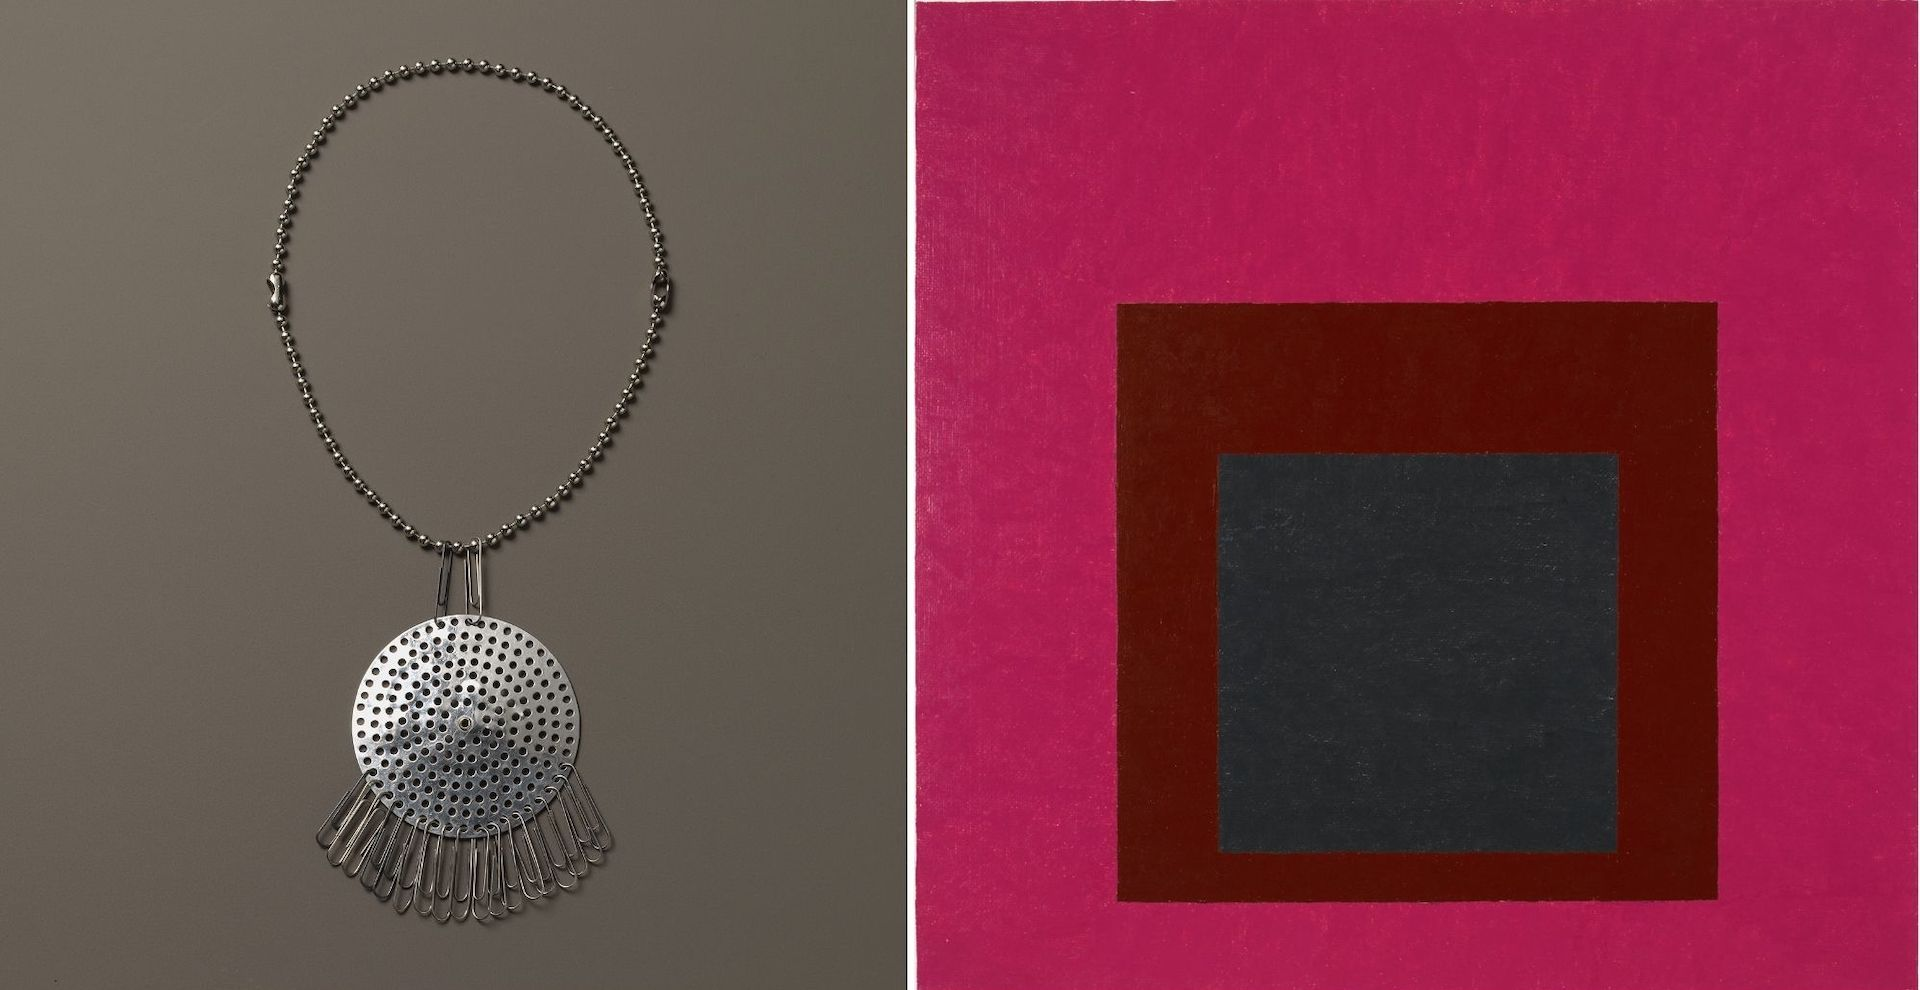 Collier by Anni Albers & Alexander Reed, c. 1940. Homage to the Square: Guarded by Josef Albers, 1952. The Josef and Anni Albers Foundation © 2021 The Josef and Anni Albers Foundation/Artists Rights Society (ARS), New York/ADAGP, Paris 2021